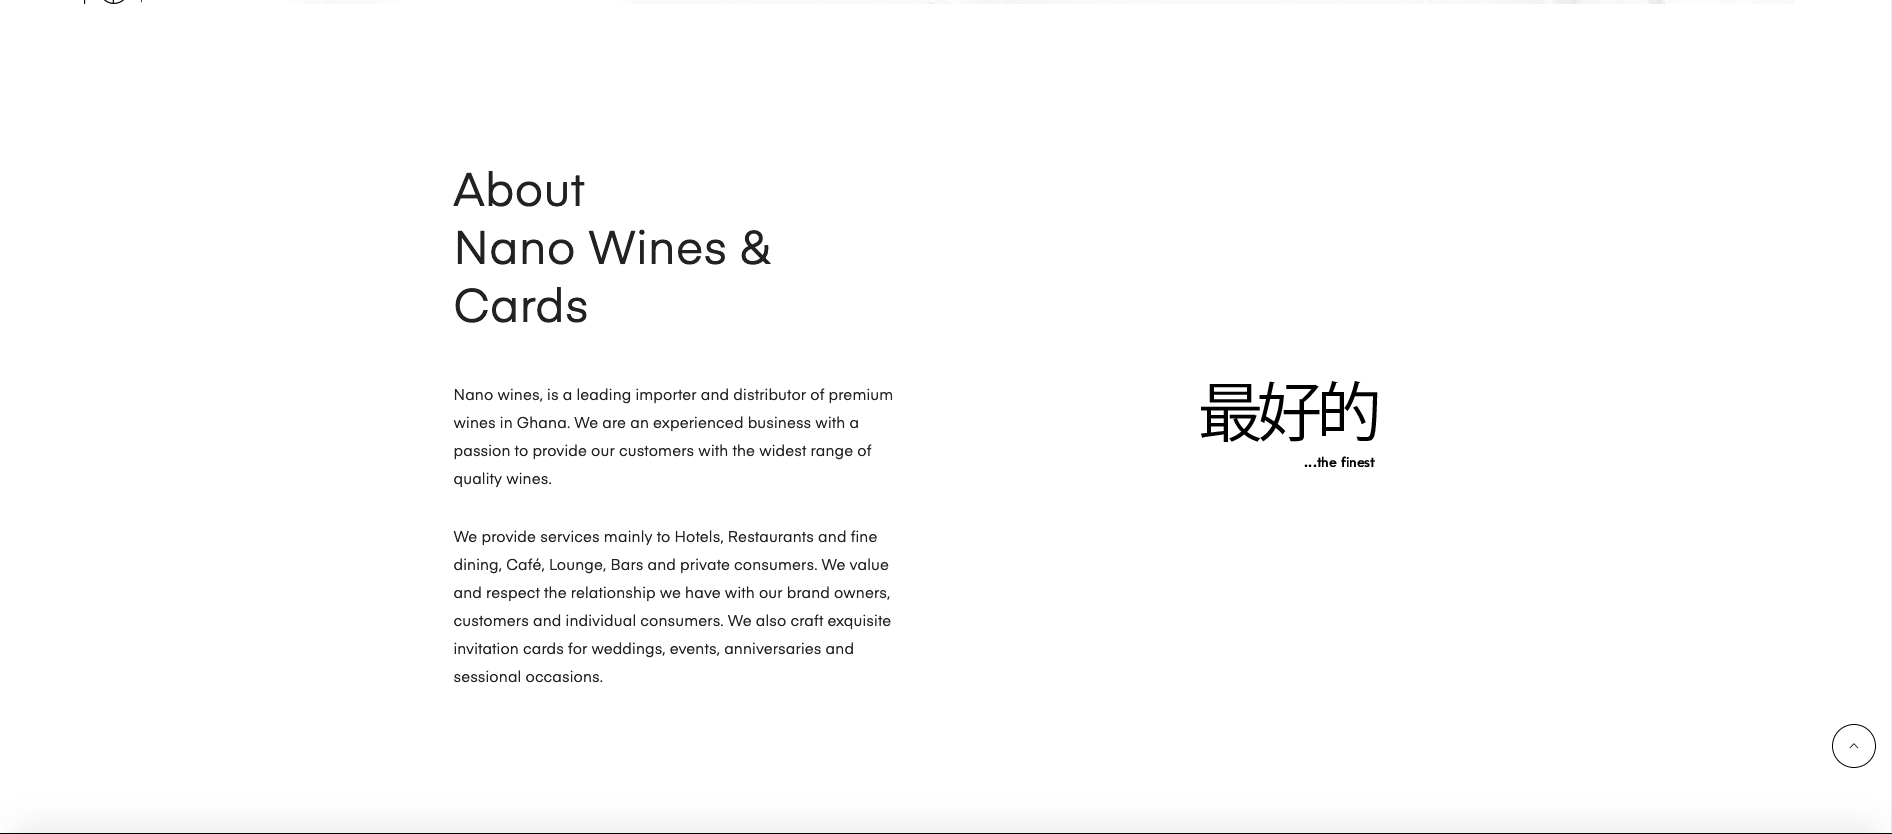 Nano wines and cards about page